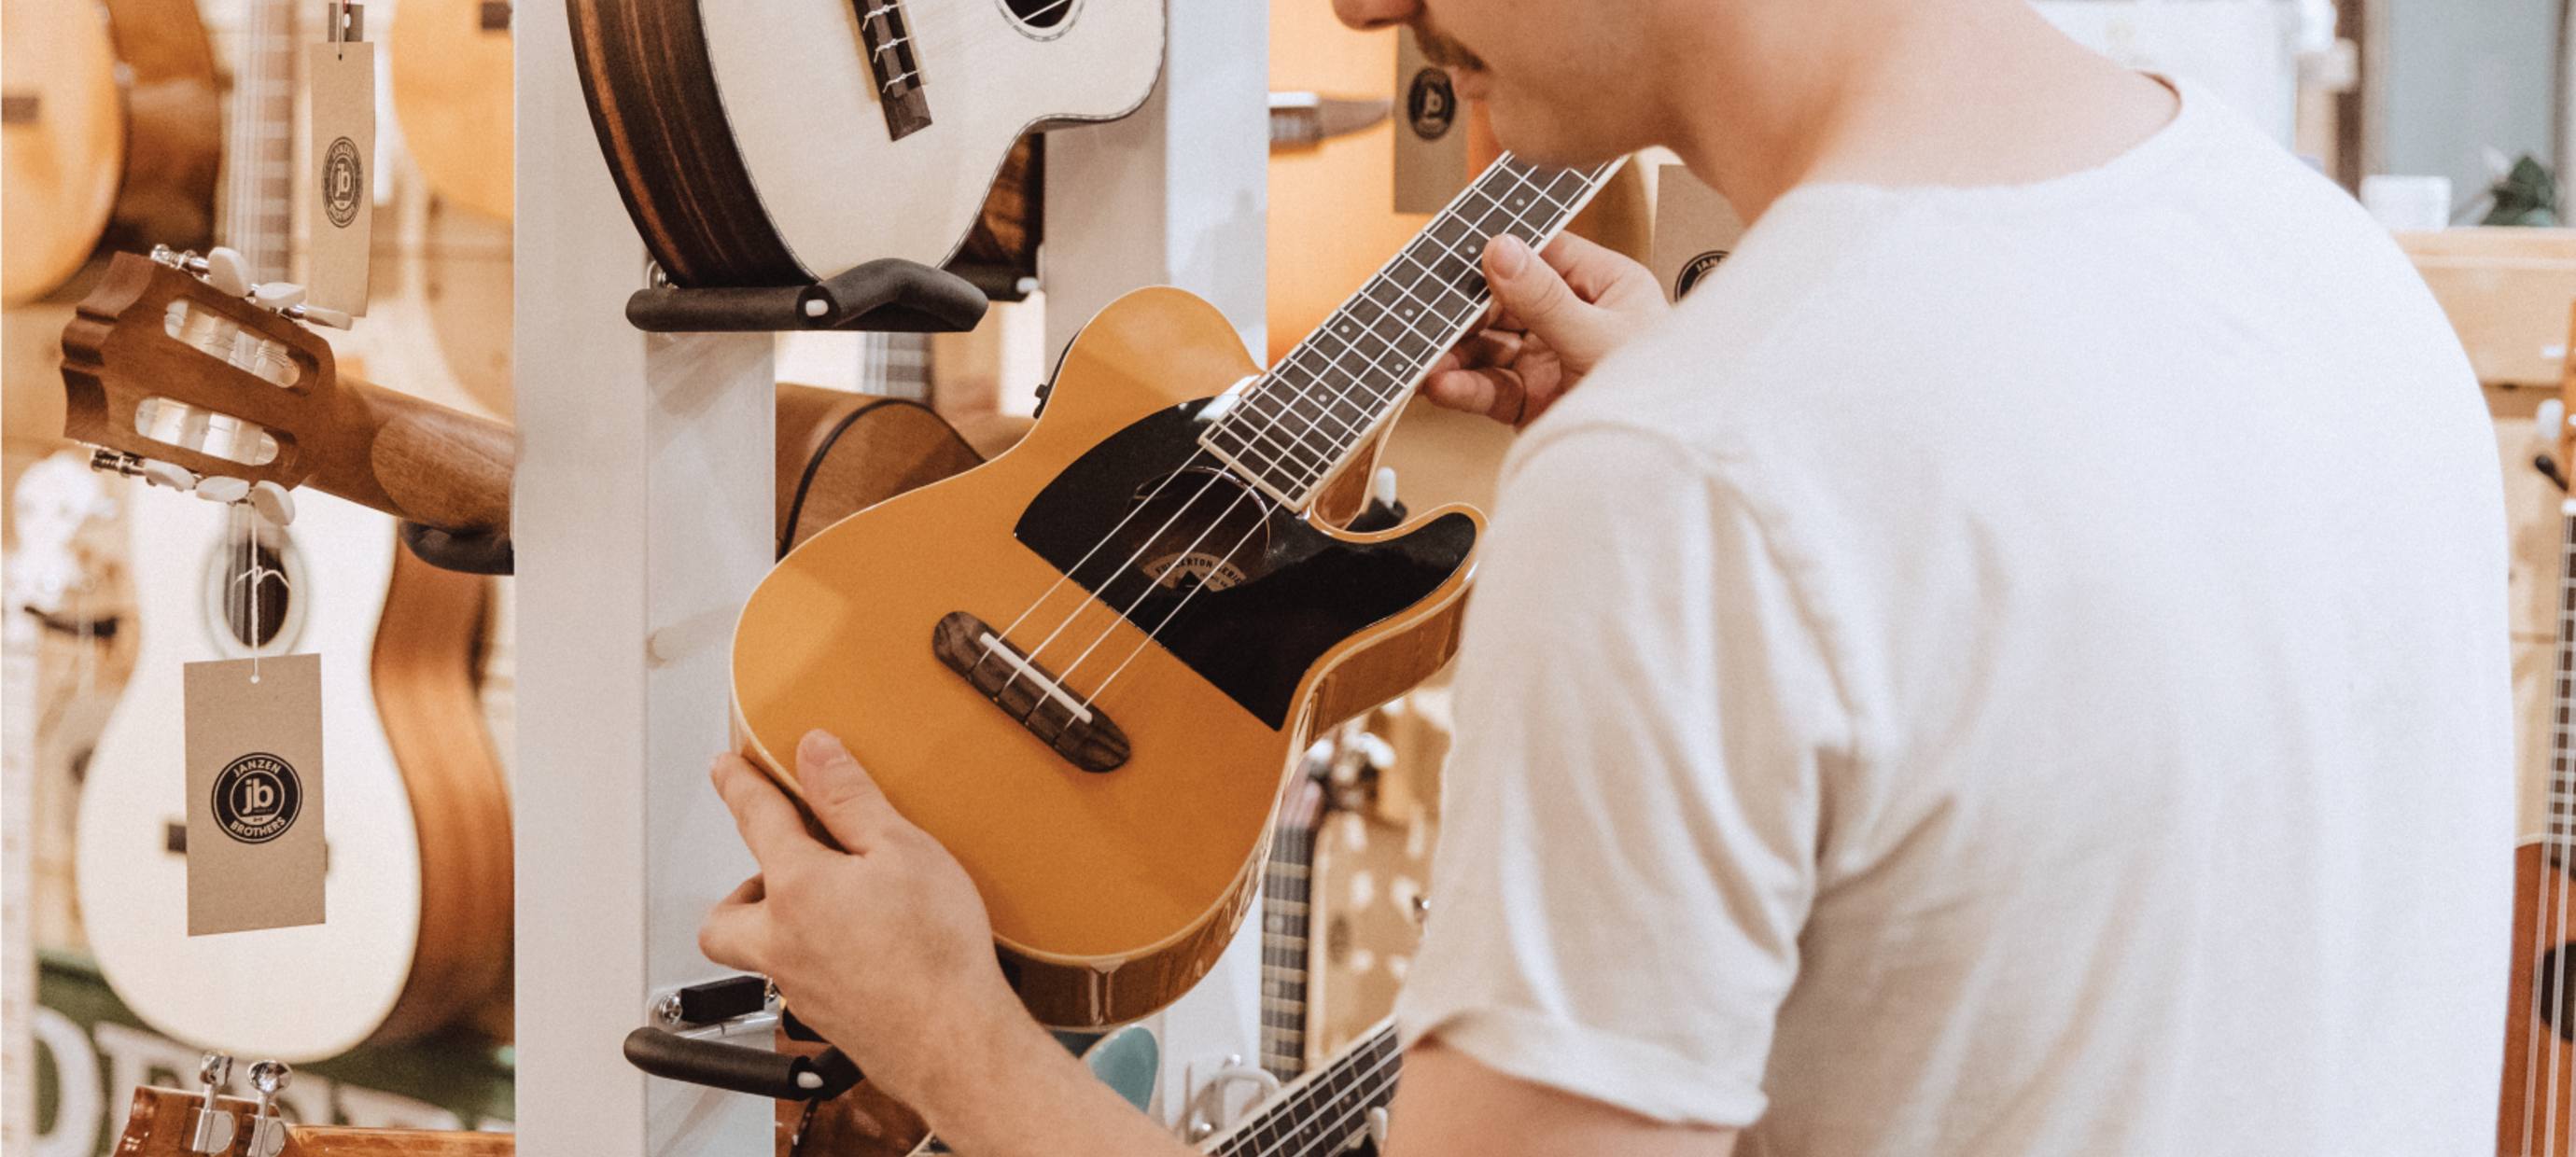 What Is a Ukulele?